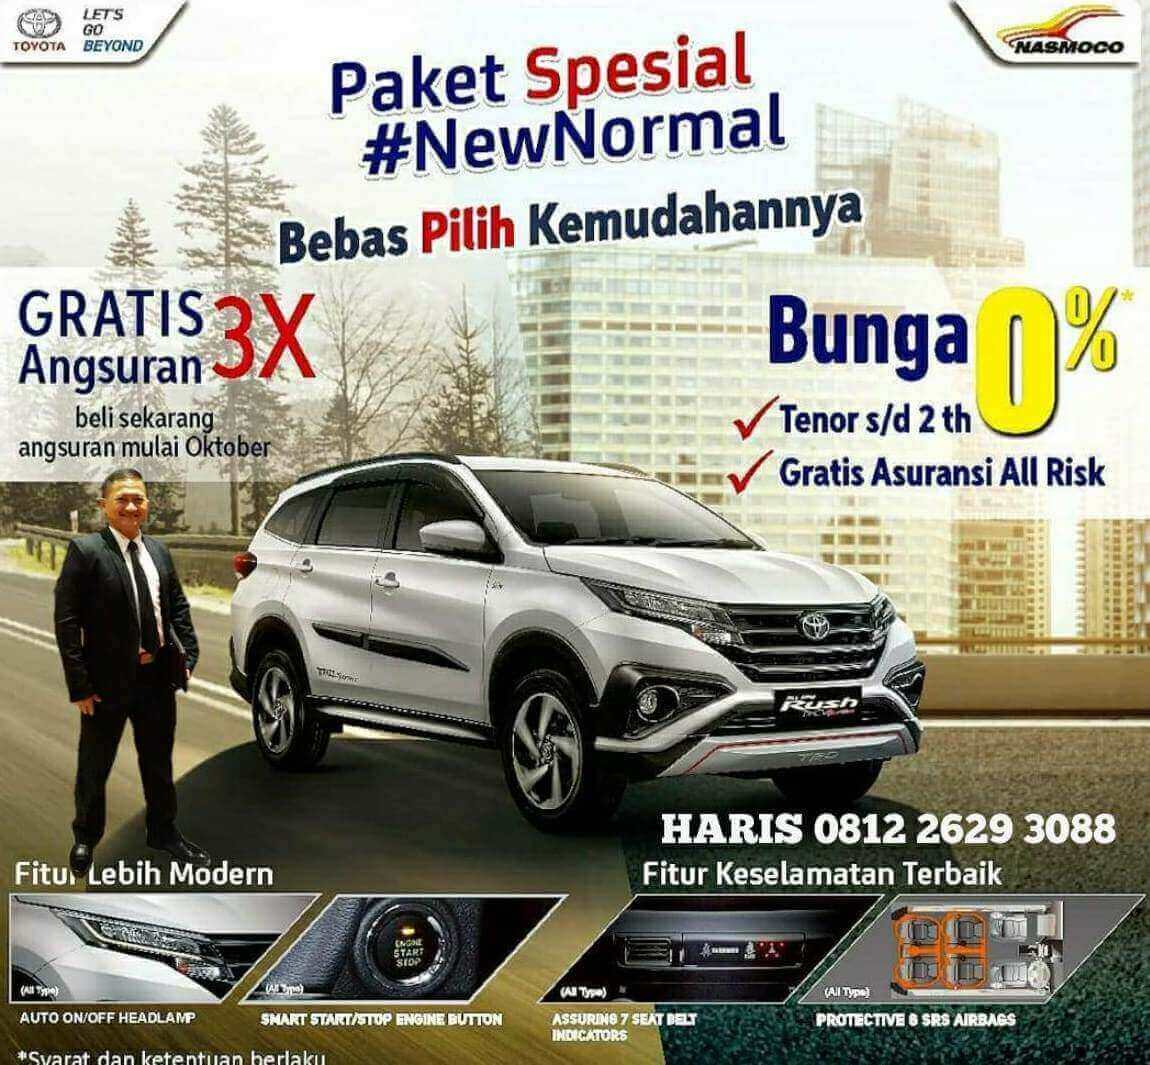 Promo Spesial New Normal Toyota Semarang